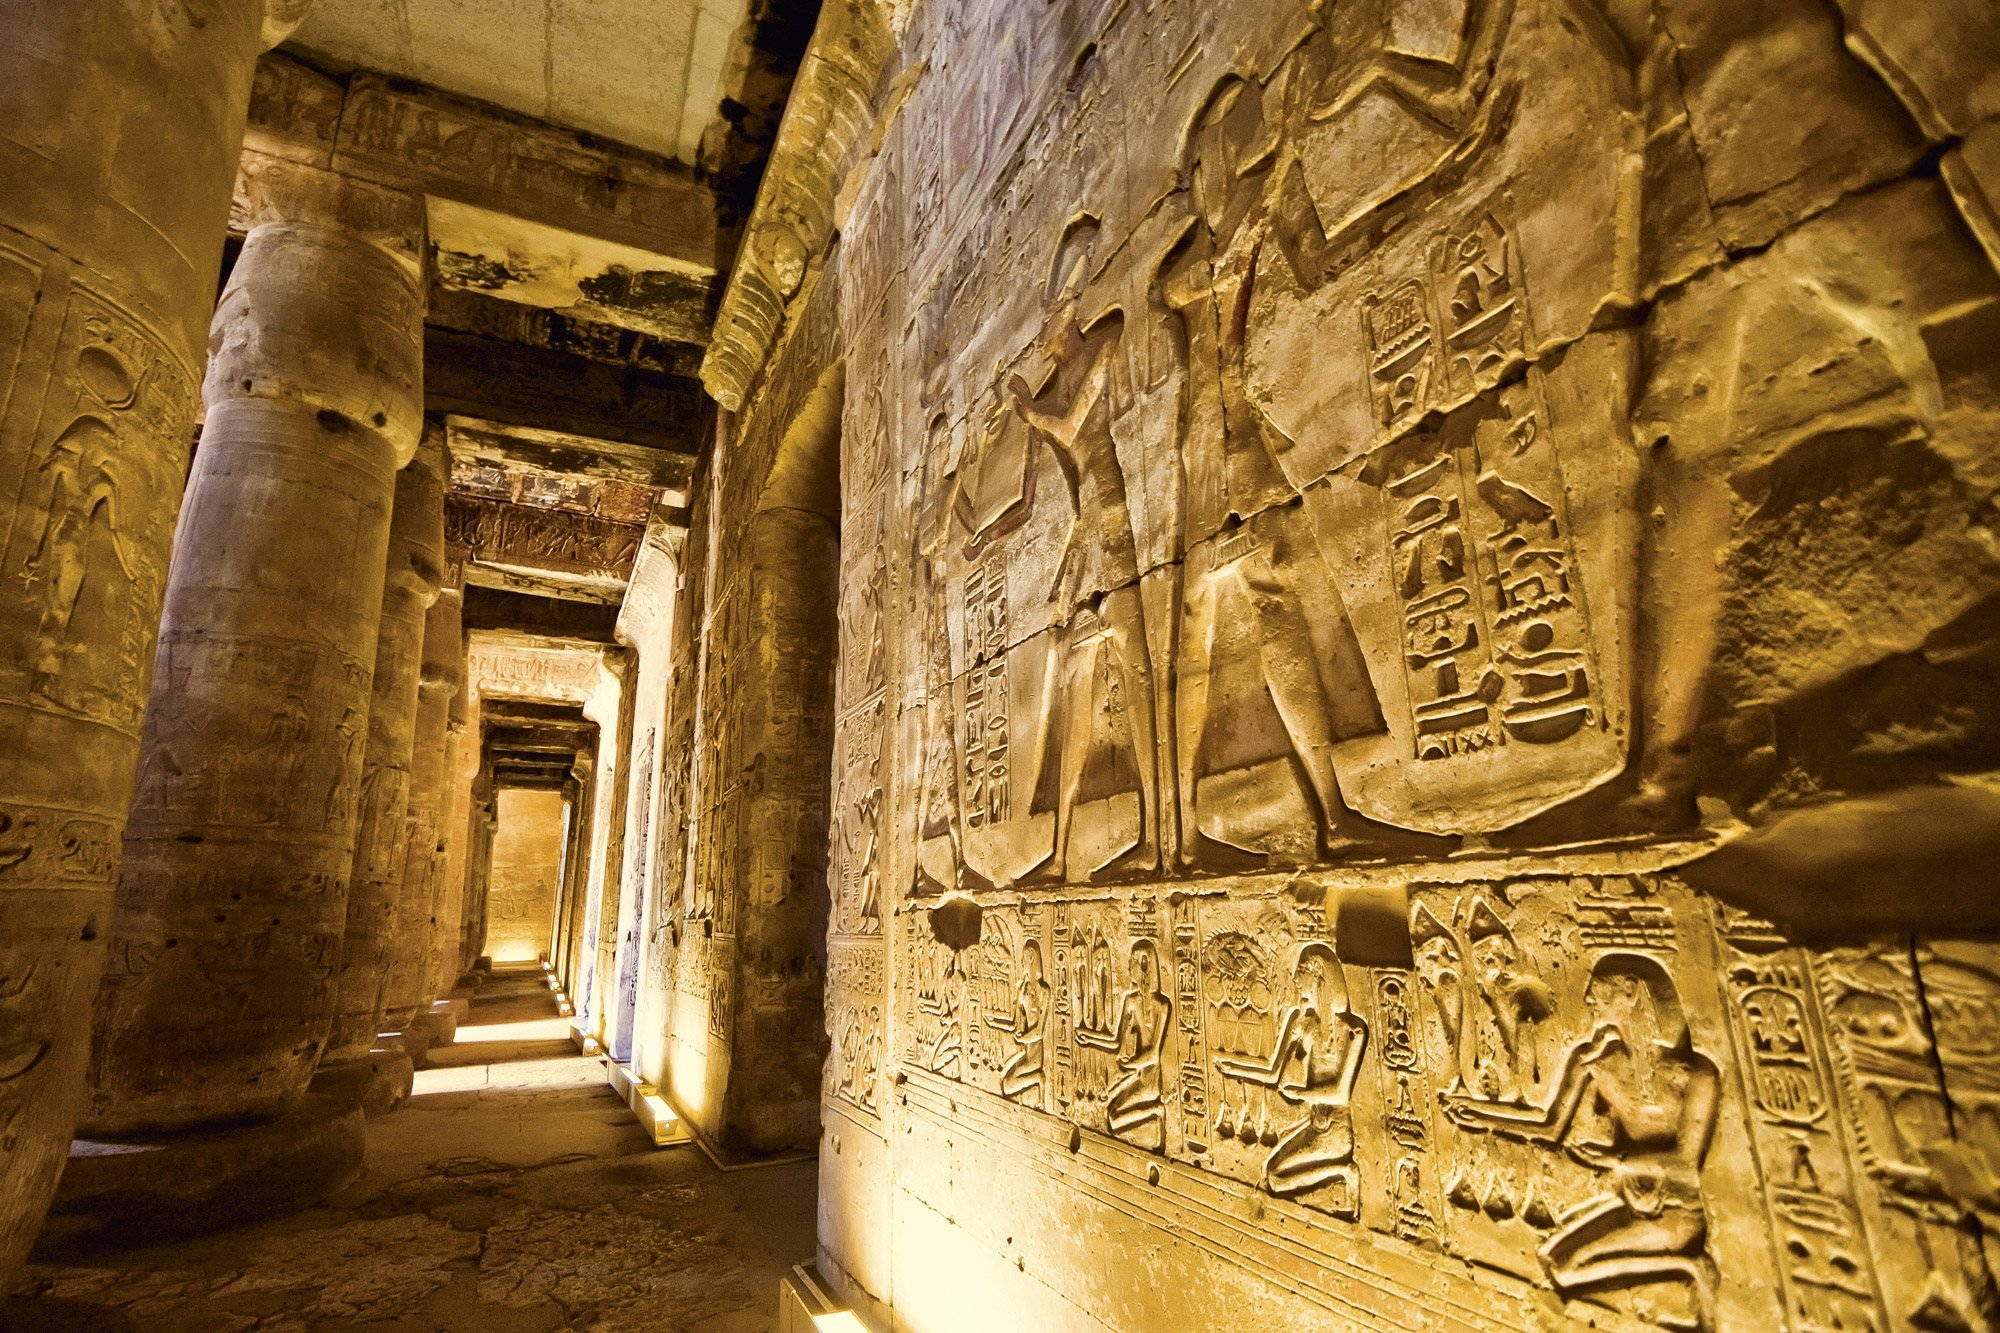 Many secret passages have been previously found in tombs in Egypt.